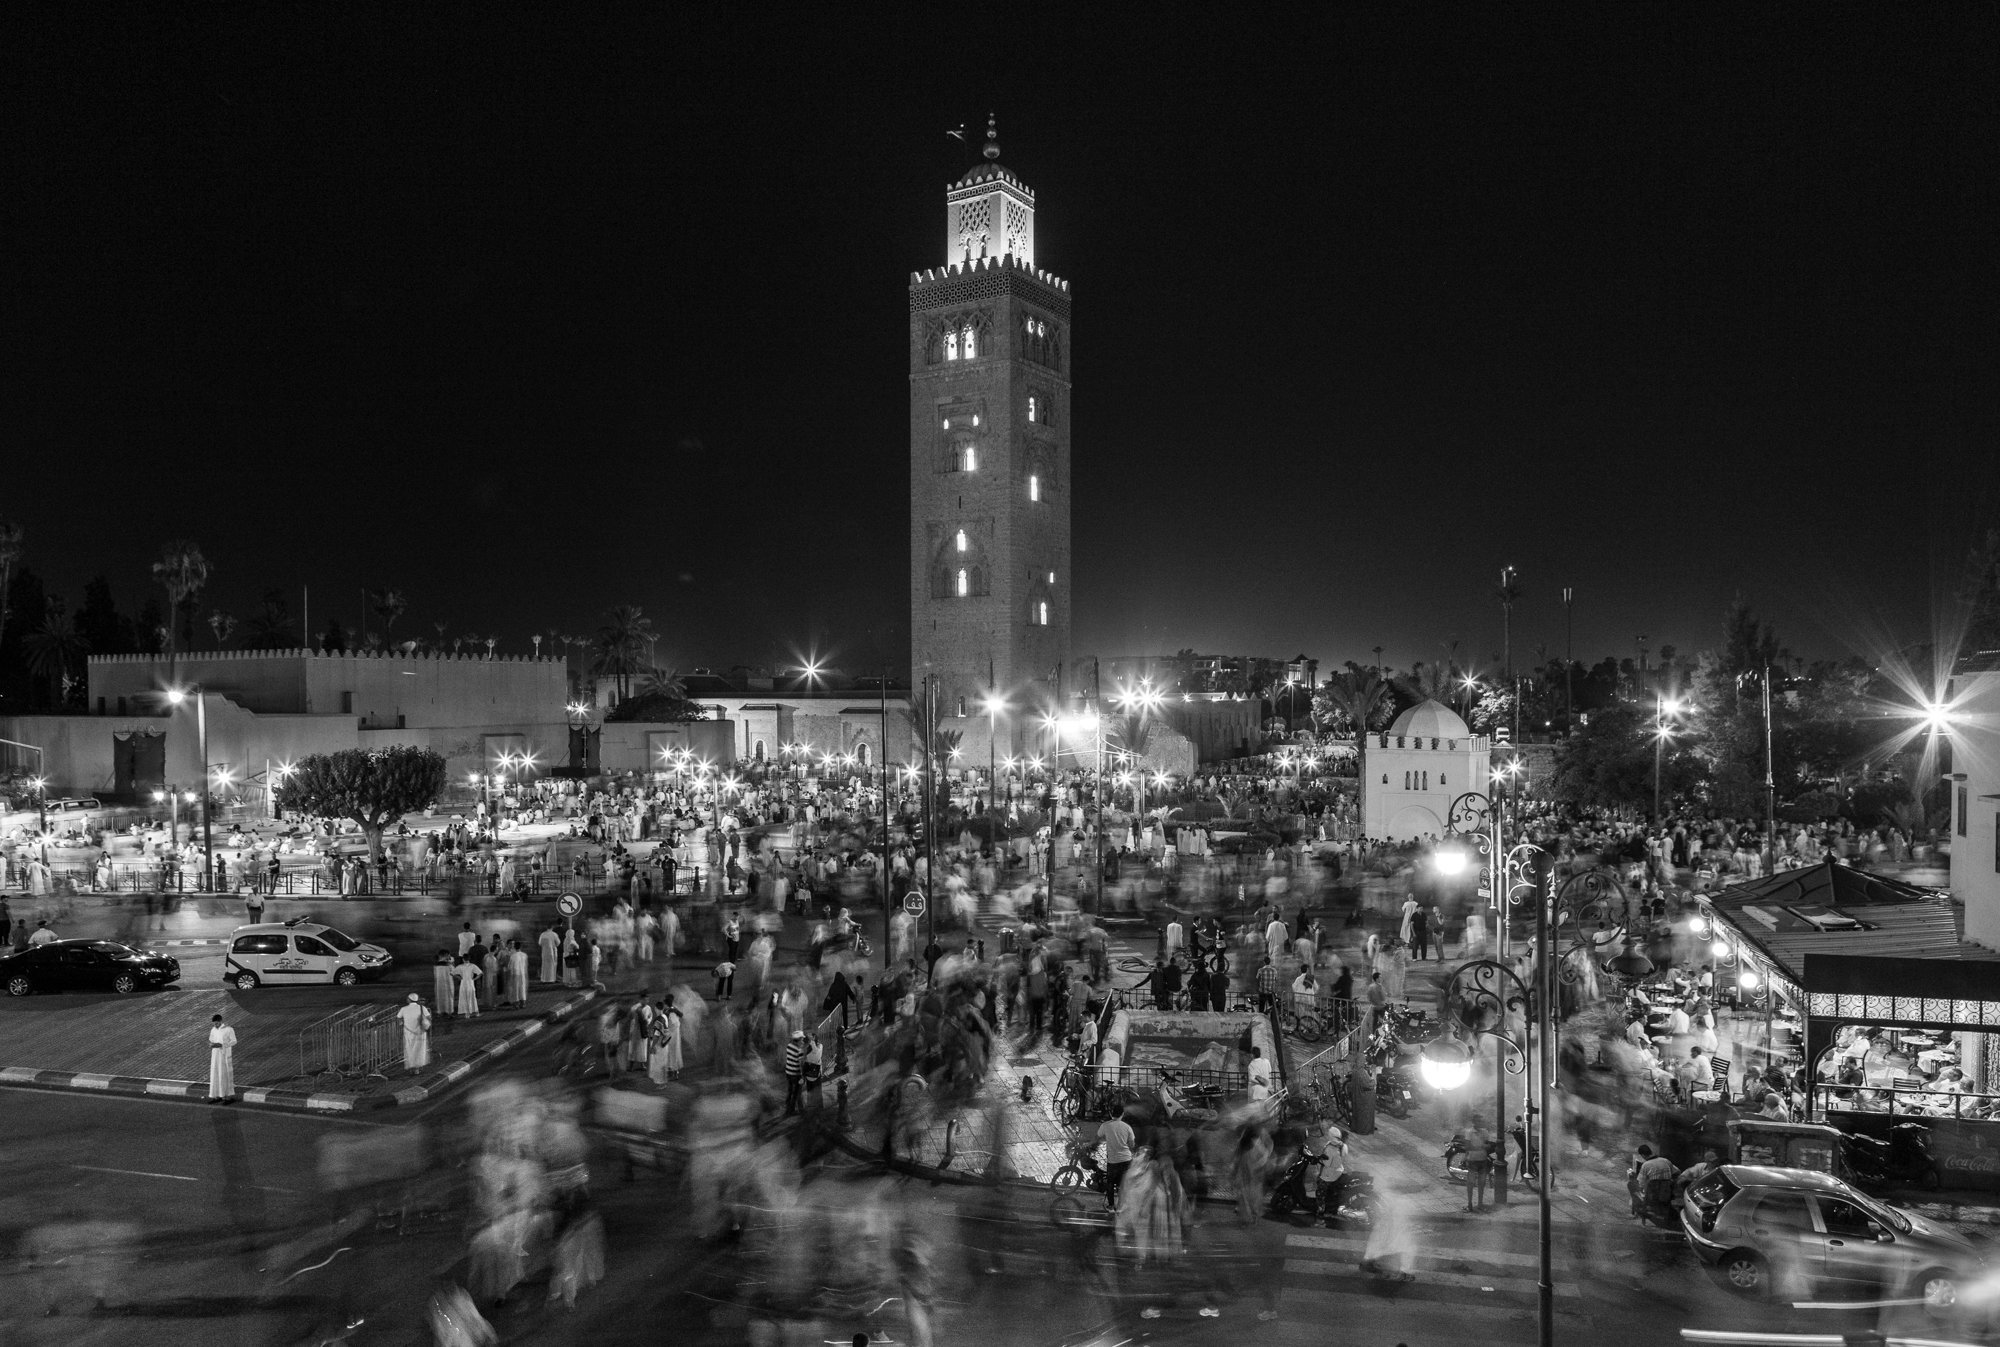 End of evening prayers at Koutoubia, Marrakesh at Ramadan